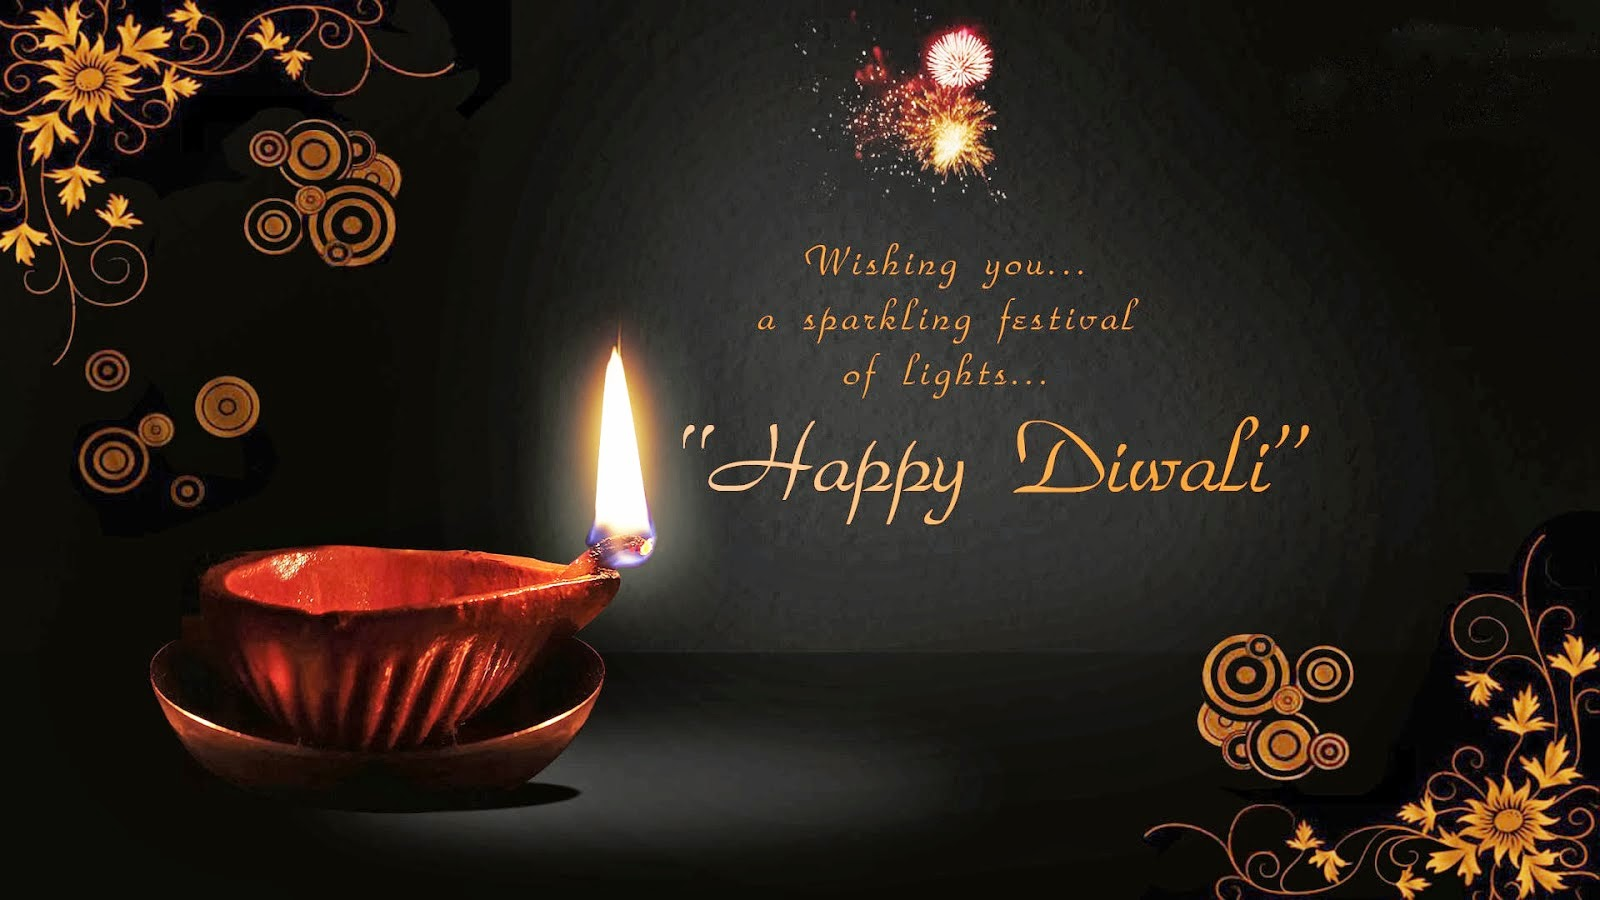 (Shubh Deepavali) Happy Diwali Images Wallpapers Photos Whatsapp FB DP Crackers Firework Video 2015